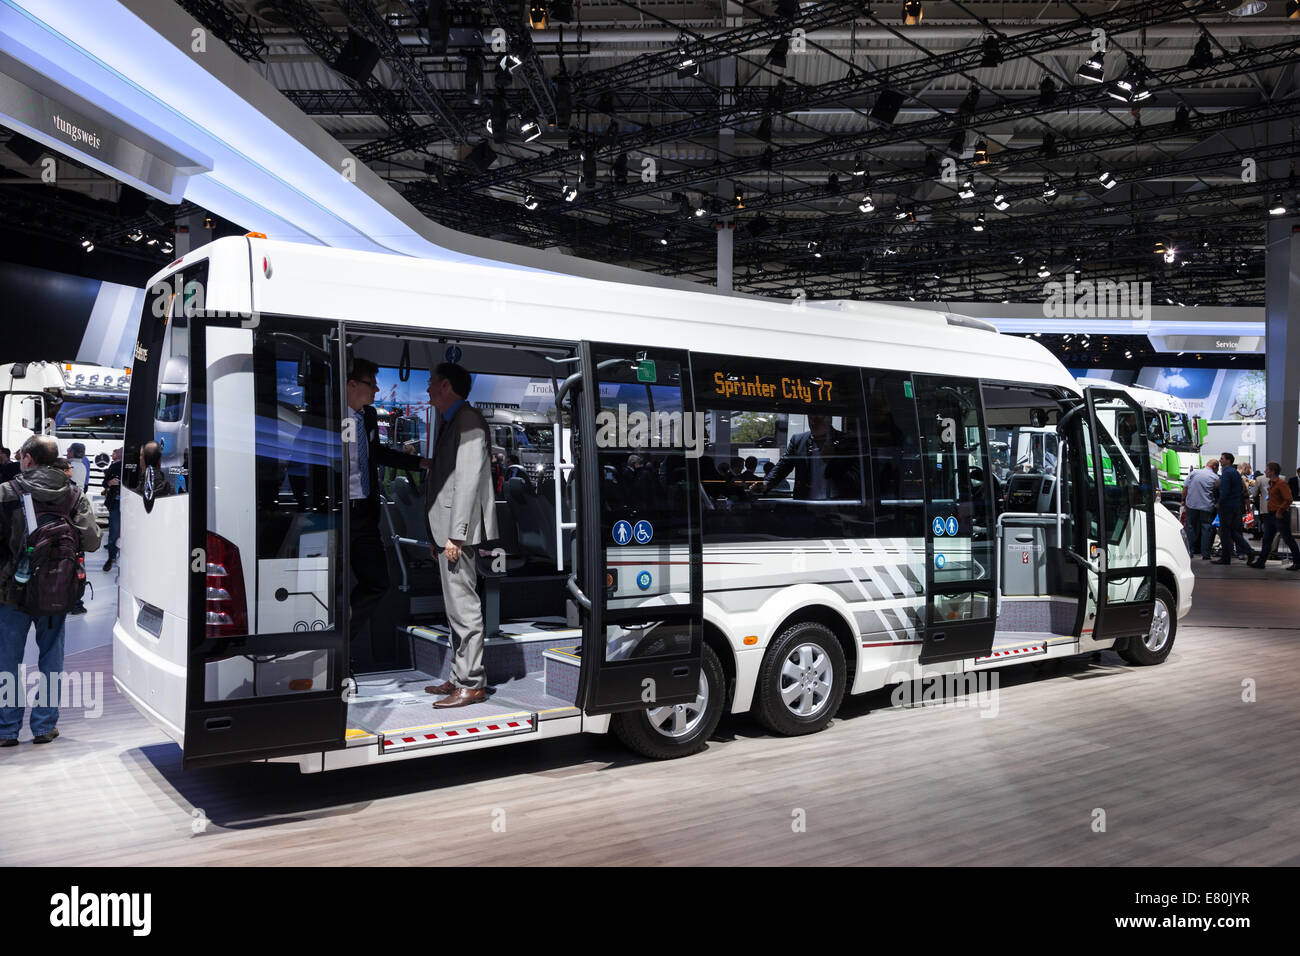 Mercedes Benz Sprinter City 77 at the 65th IAA Commercial Vehicles 2014 in Hannover, Germany - Stock Image